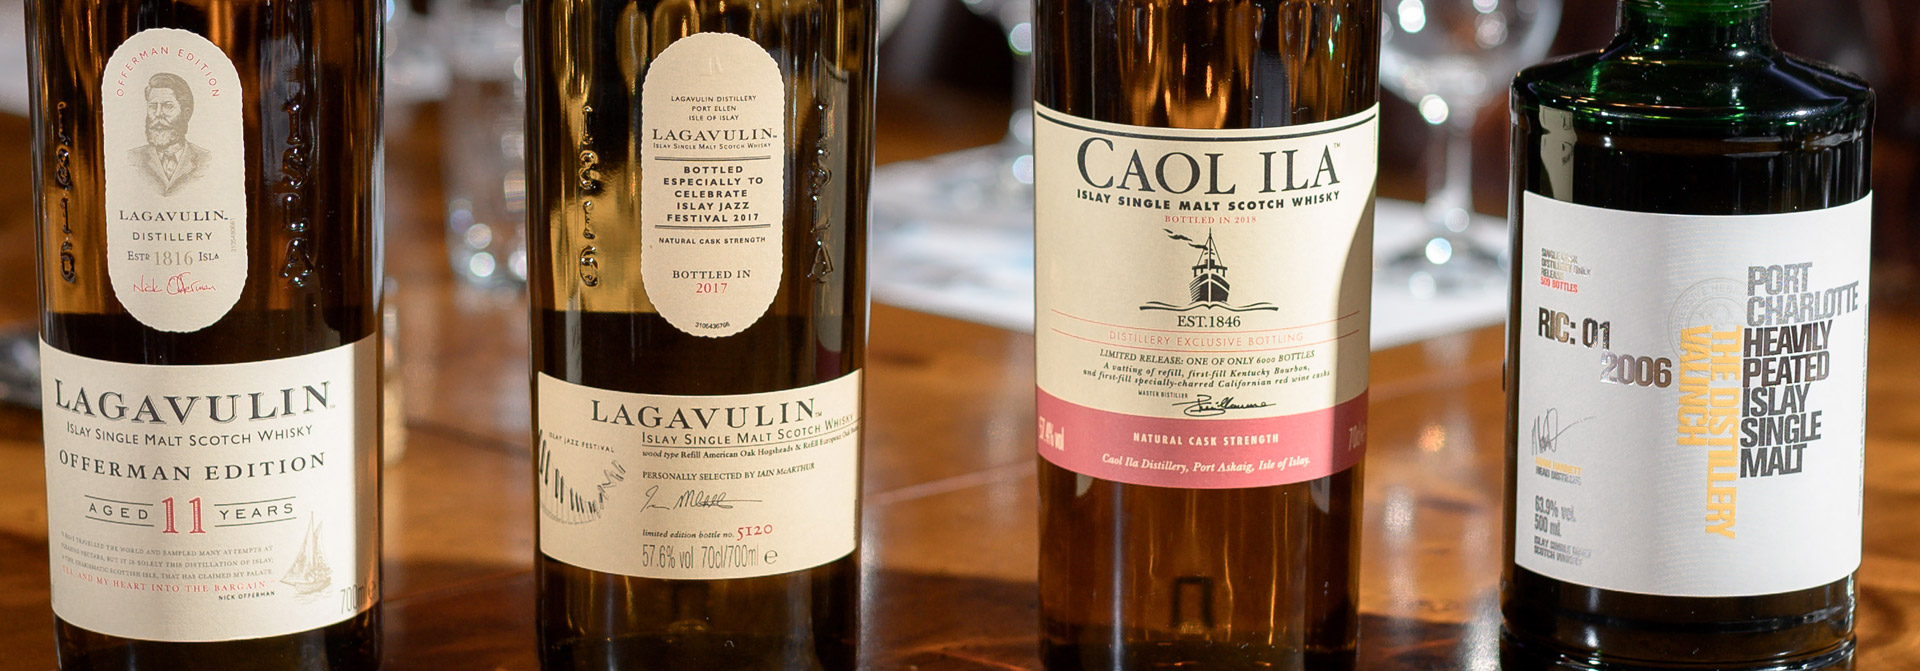 The Tasters Club Tasting Day 36 Islay whisky tasting lagavulin caol ila port charlotte